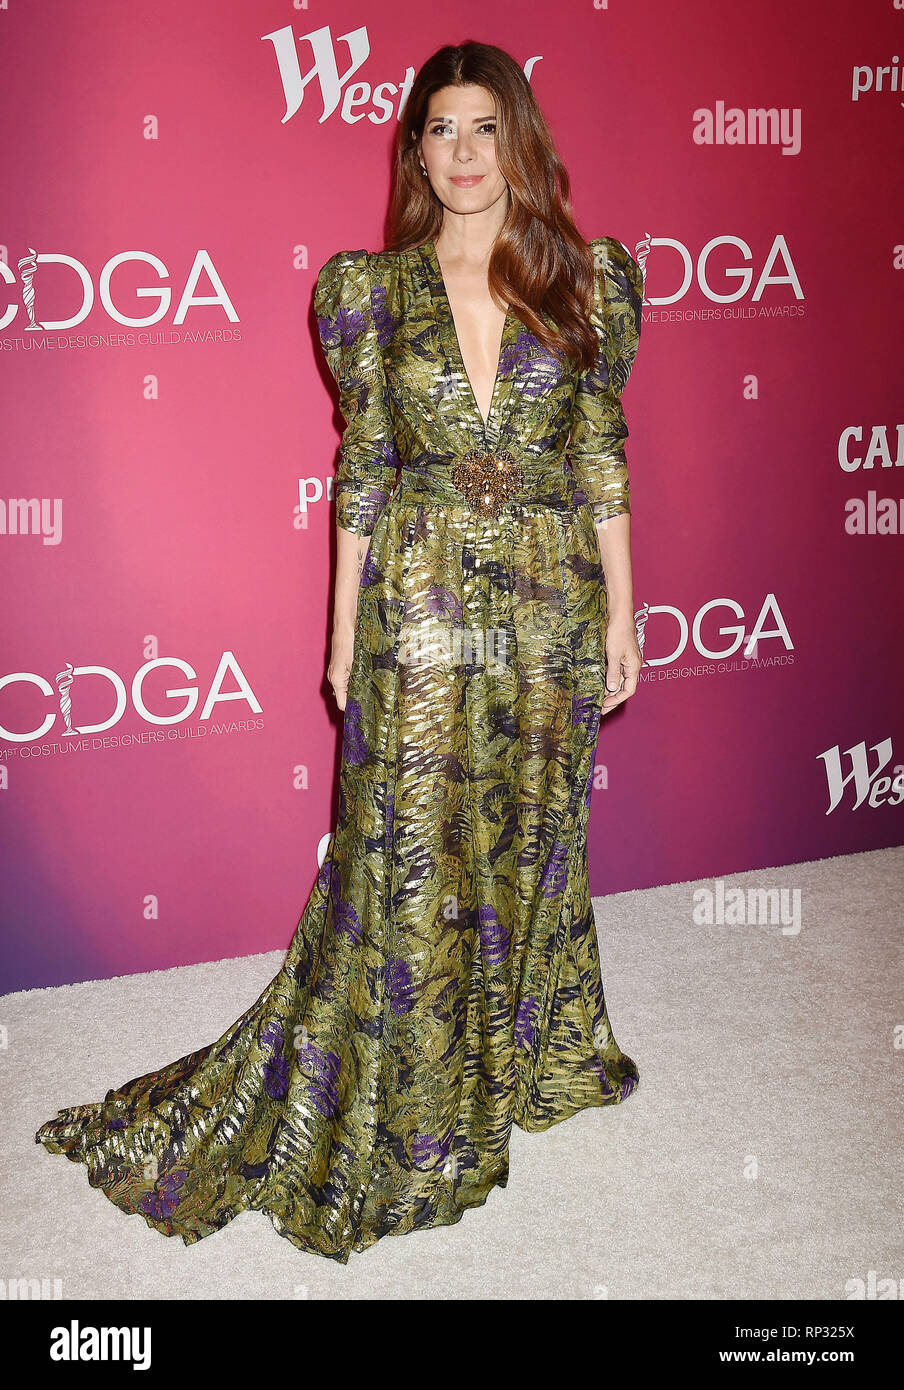 BEVERLY HILLS, CA - FEBRUARY 19: Marisa Tomei  arrives at the 21st CDGA (Costume Designers Guild Awards) at The Beverly Hilton Hotel on February 19, 2 - Stock Image